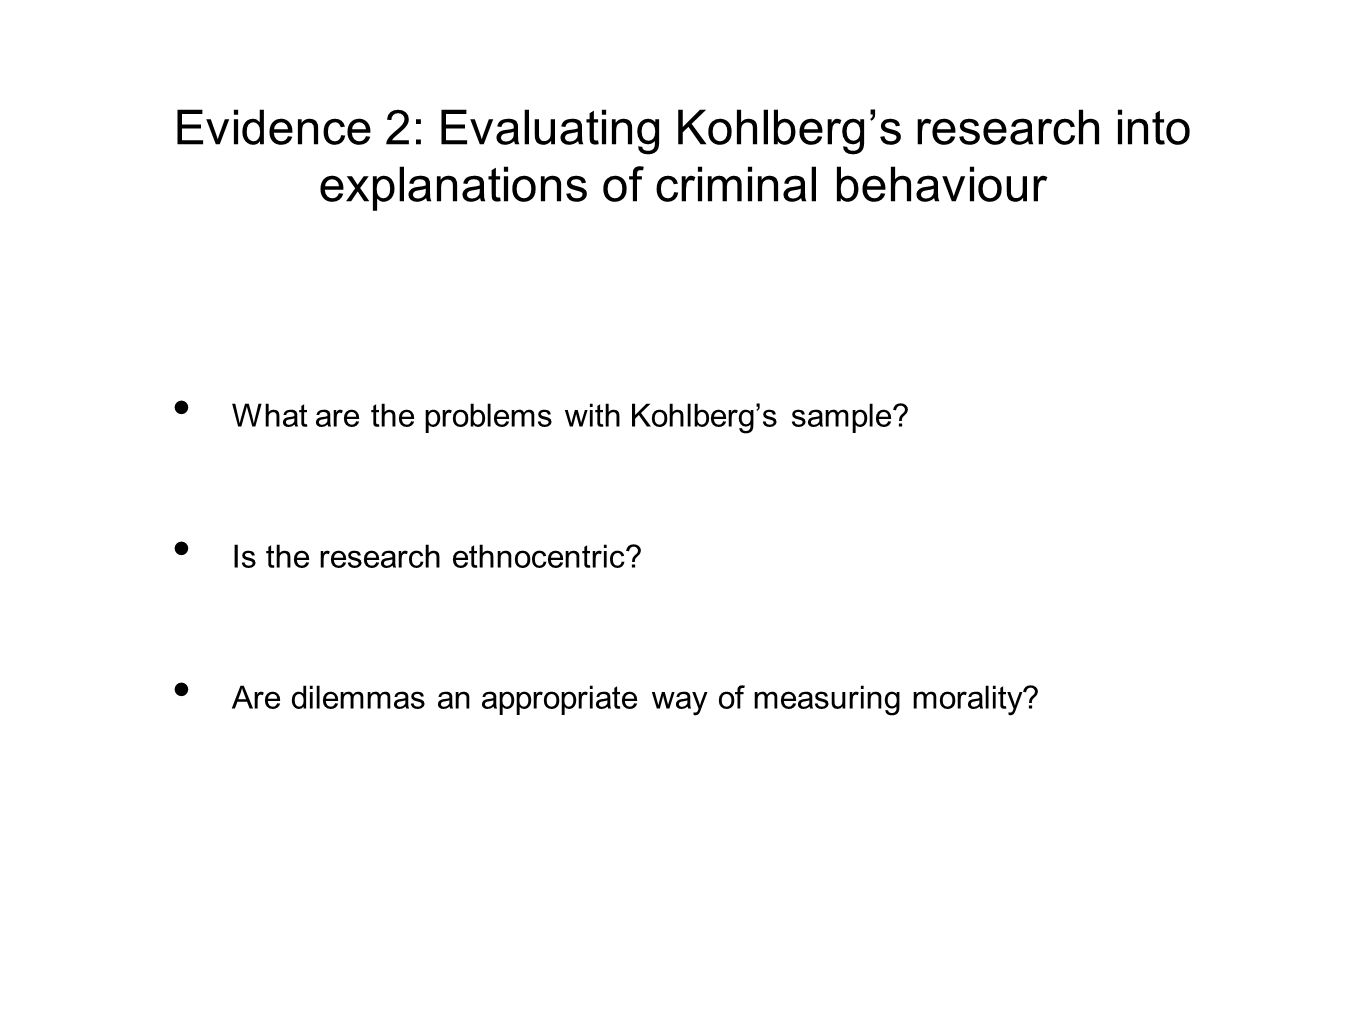 Evidence 2: Evaluating Kohlberg's research into explanations of criminal behaviour What are the problems with Kohlberg's sample? Is the research ethno